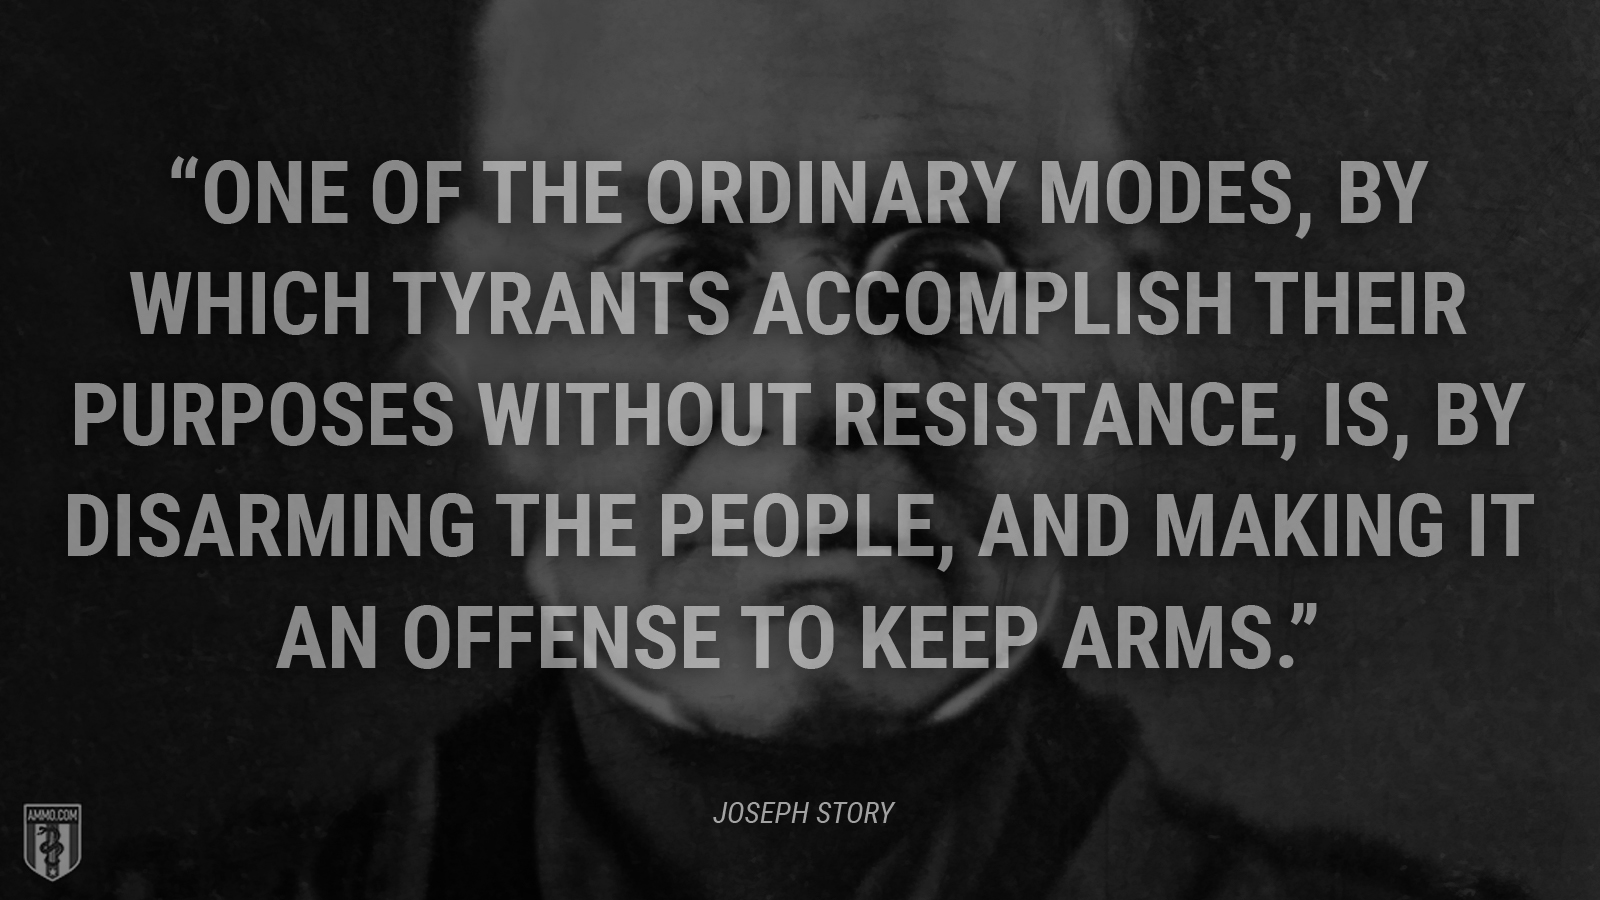 """One of the ordinary modes, by which tyrants accomplish their purposes without resistance, is, by disarming the people, and making it an offense to keep arms."" - Joseph Story"